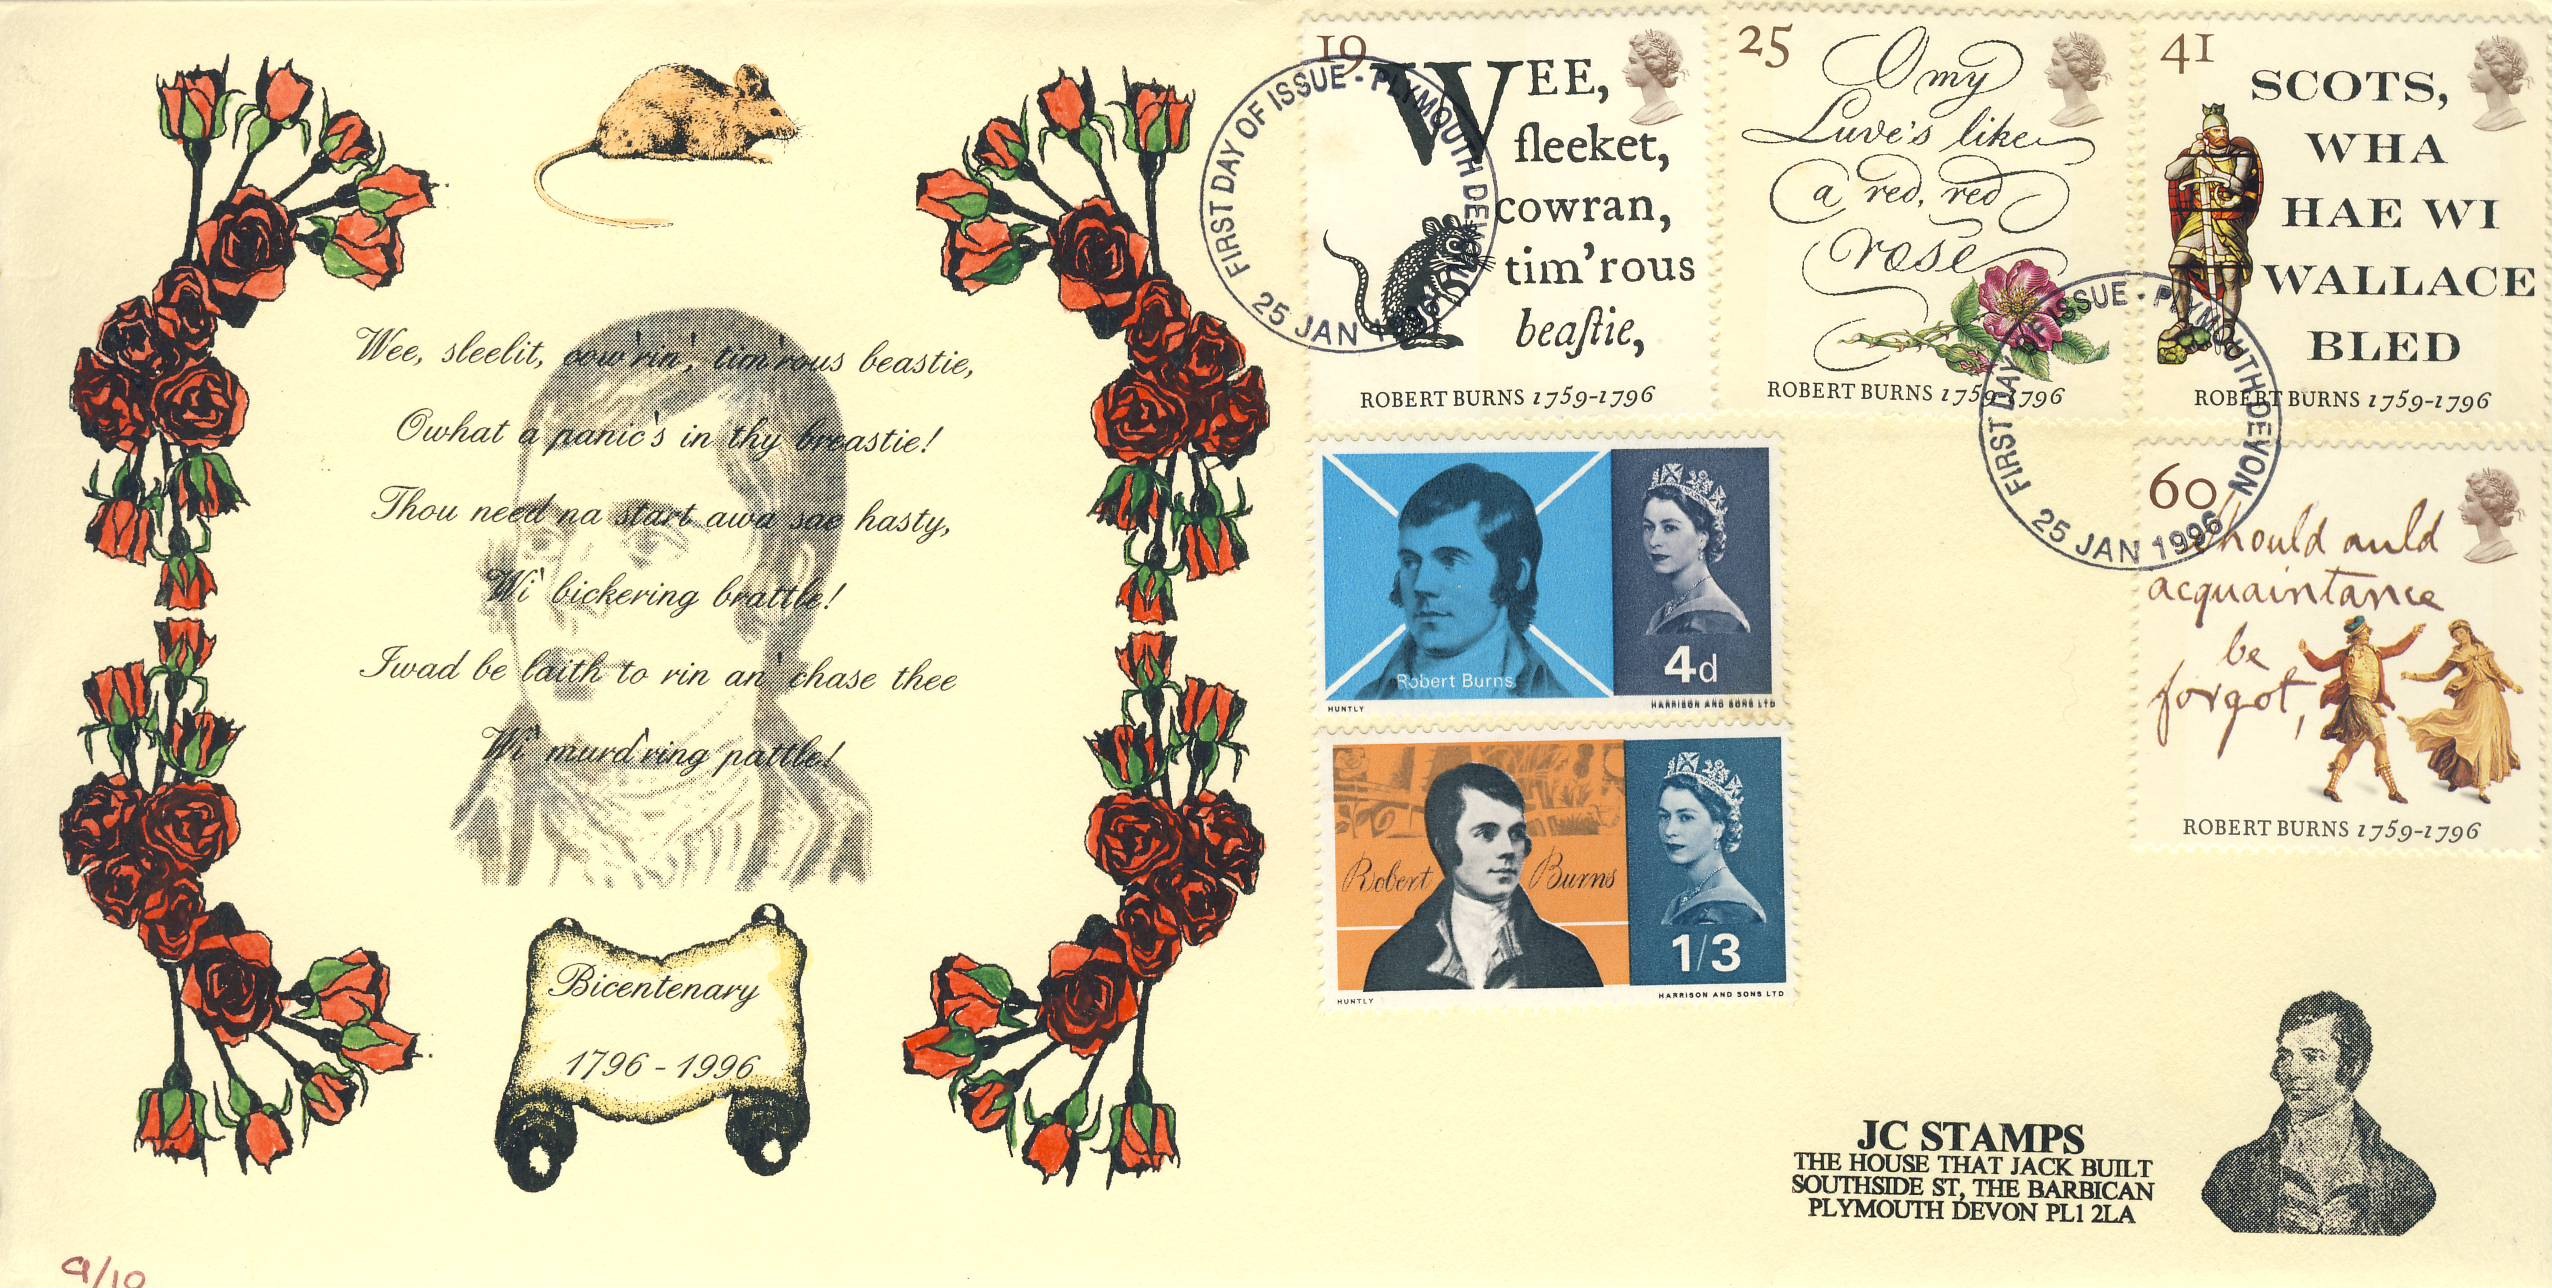 1996 Robert Burns Bicenternary stamps Plymouth Devon first day cover FDC First Day of Issue 25 Jan 1996. Addressed JC STAMPS The House That Jack Built